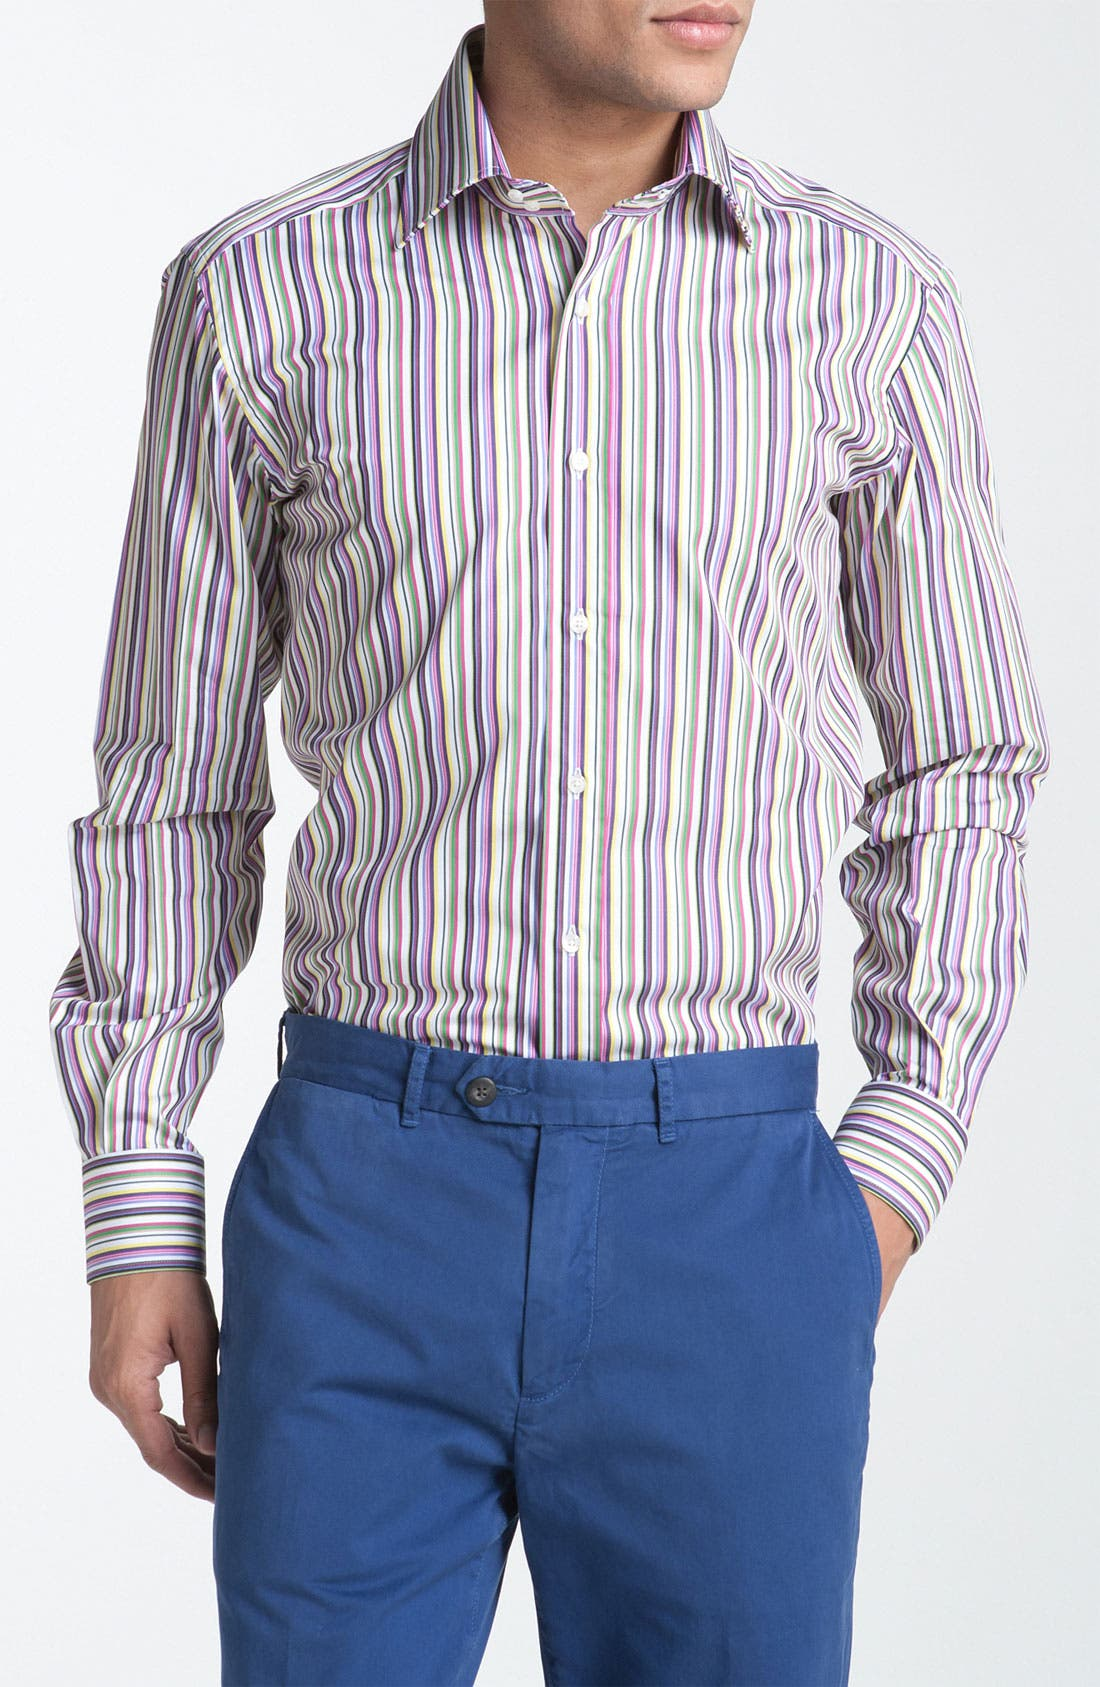 Main Image - Etro Stripe Woven Dress Shirt